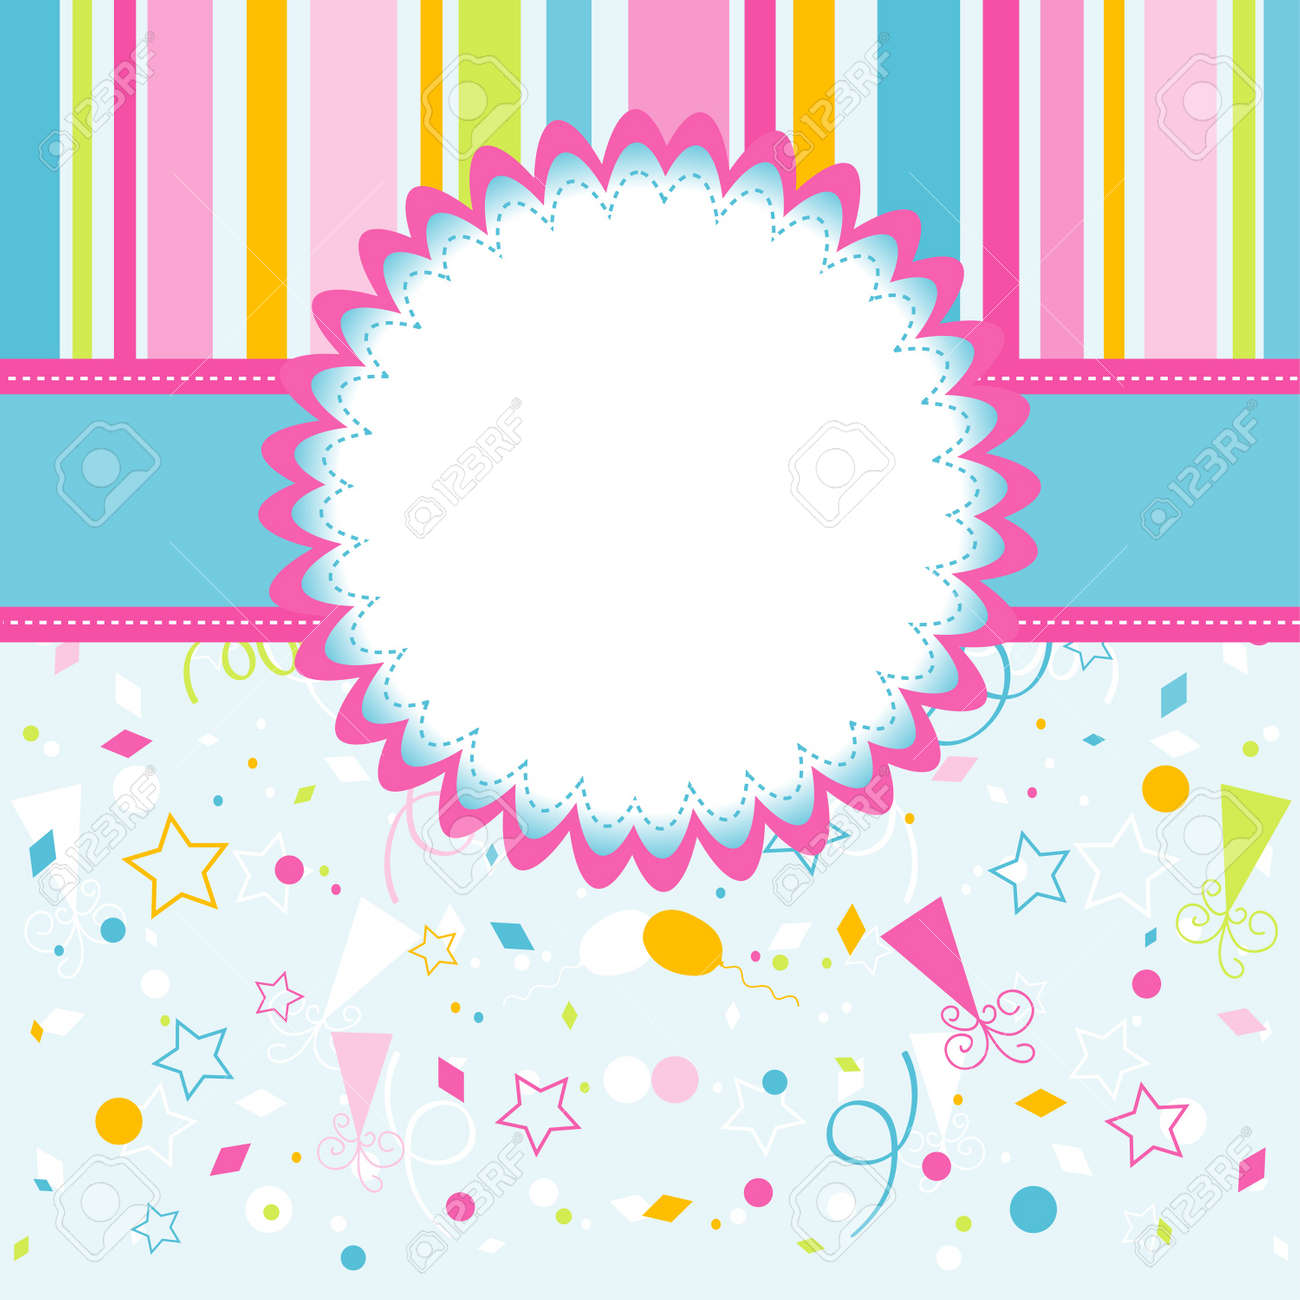 template greeting card, vector illustration royalty free cliparts